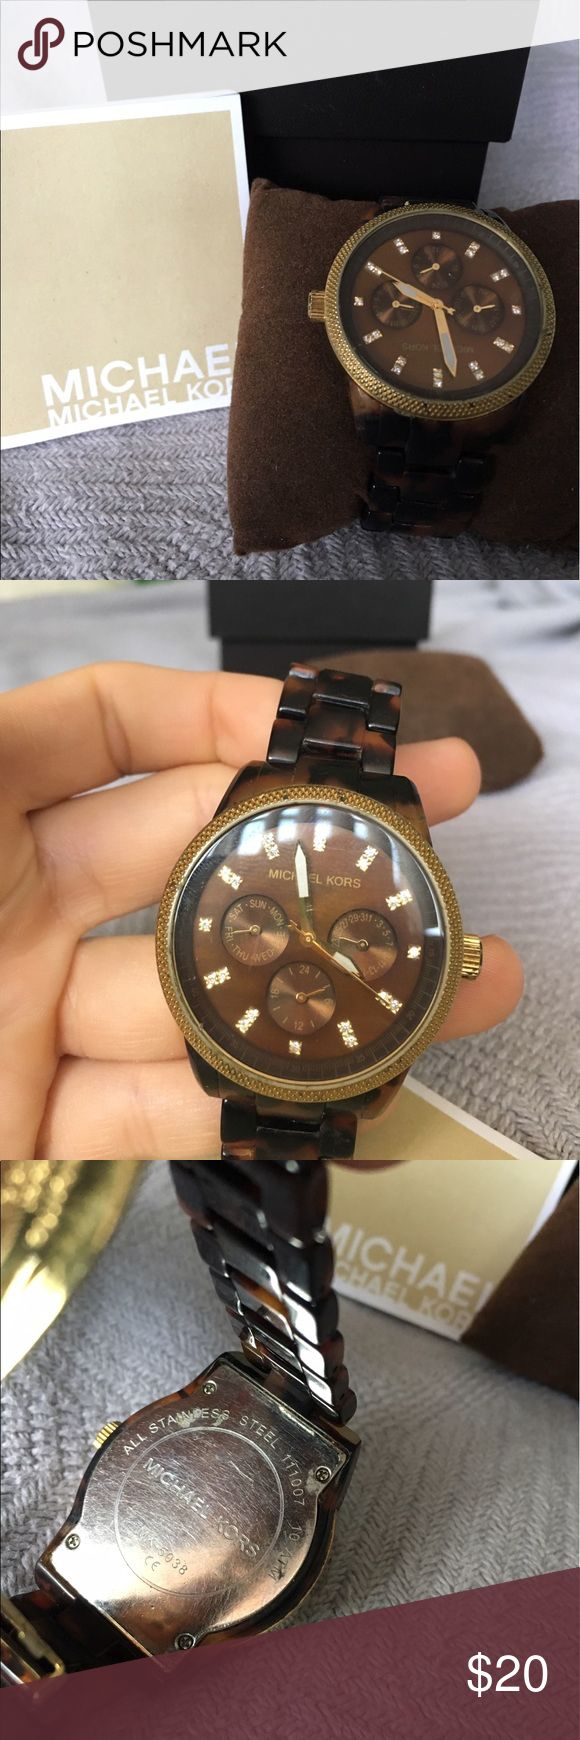 Michael Kors Tortoise Shell Watch ❗️PLEASE READ❗️This item is in obvious used condition. There are some scratches on the face, as well as along the band, and metals. There is some discoloration on the metal clasp. This watch needs some TLC, like polishing and replacing the battery. This is a beautiful watch but needs some TLC. MICHAEL Michael Kors Accessories Watches